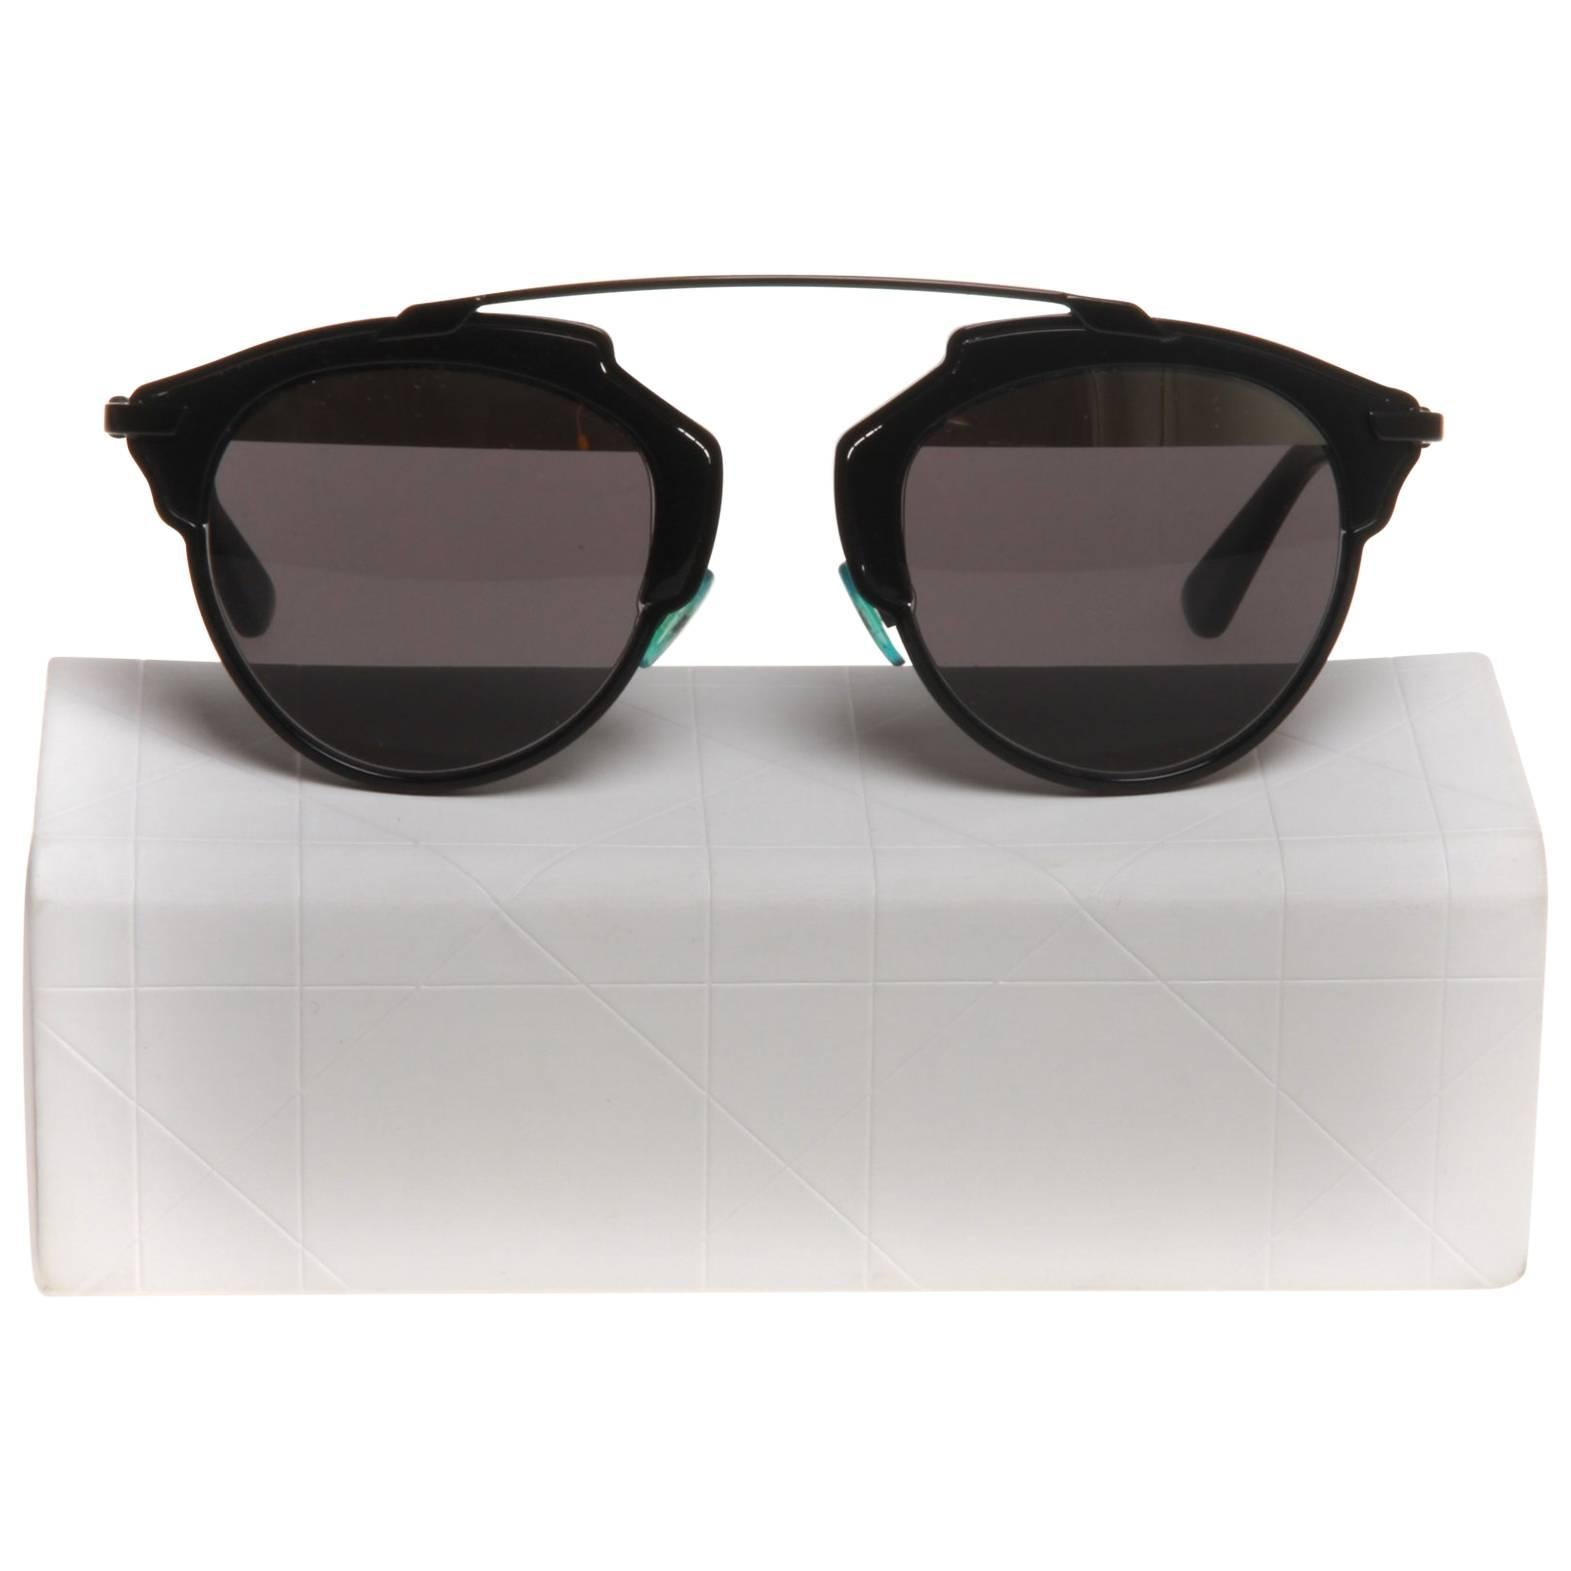 369f2d29ffdd Christian Dior So Real Sunglasses at 1stdibs